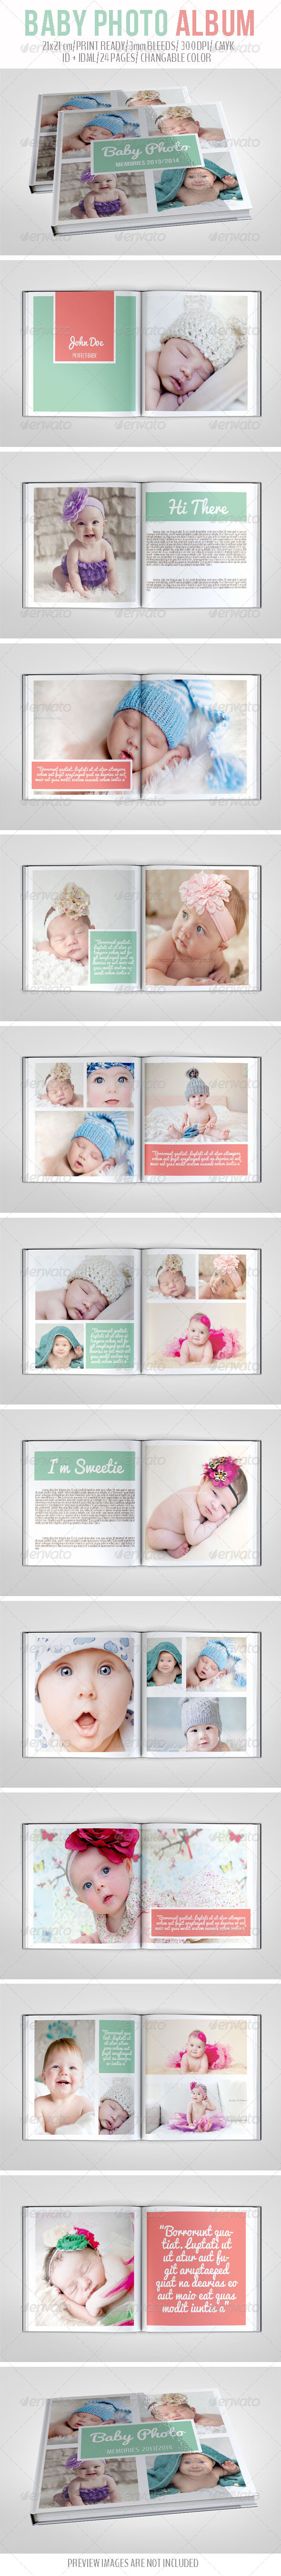 Baby Photo Album - Photo Albums Print Templates